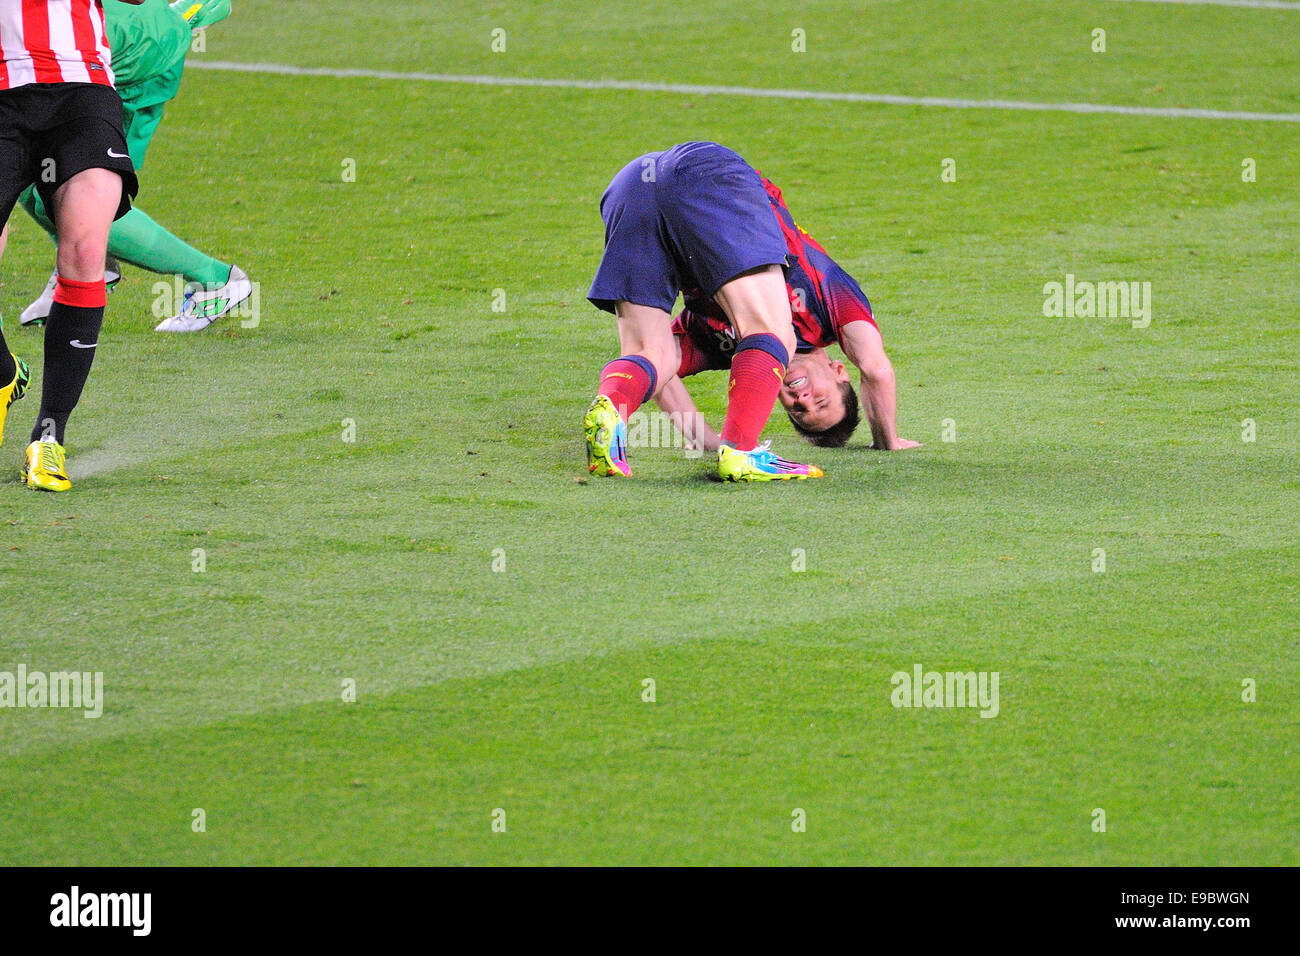 BARCELONA - APR 21: Leo Messi, F.C Barcelona player, in action against Athletic Bilbao at the Camp Nou Stadium. - Stock Image